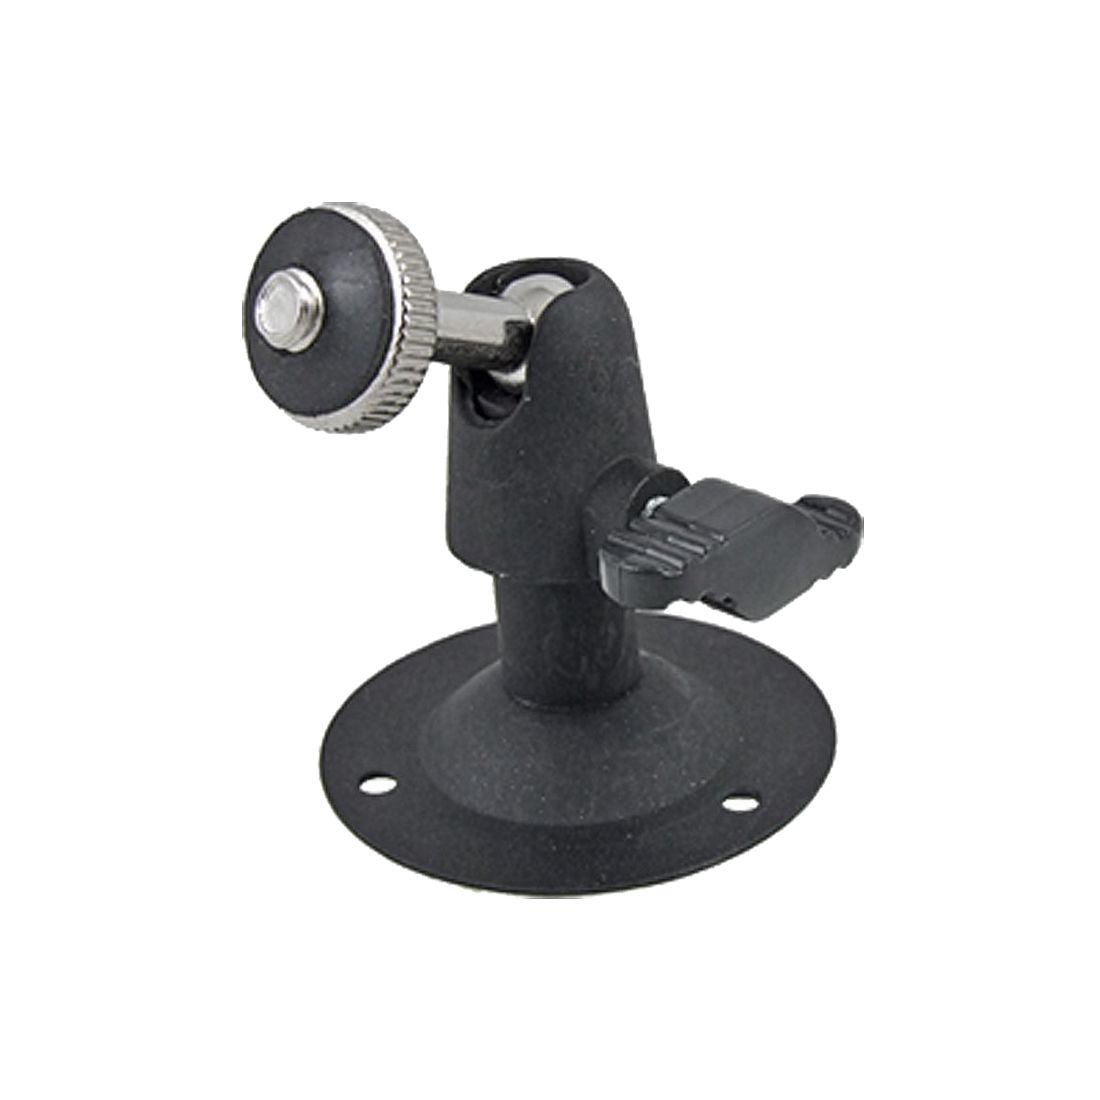 2 pcs of MOOL 2.6 inch High Wall Ceiling Mount Stand Bracket for Security CCTV Camera